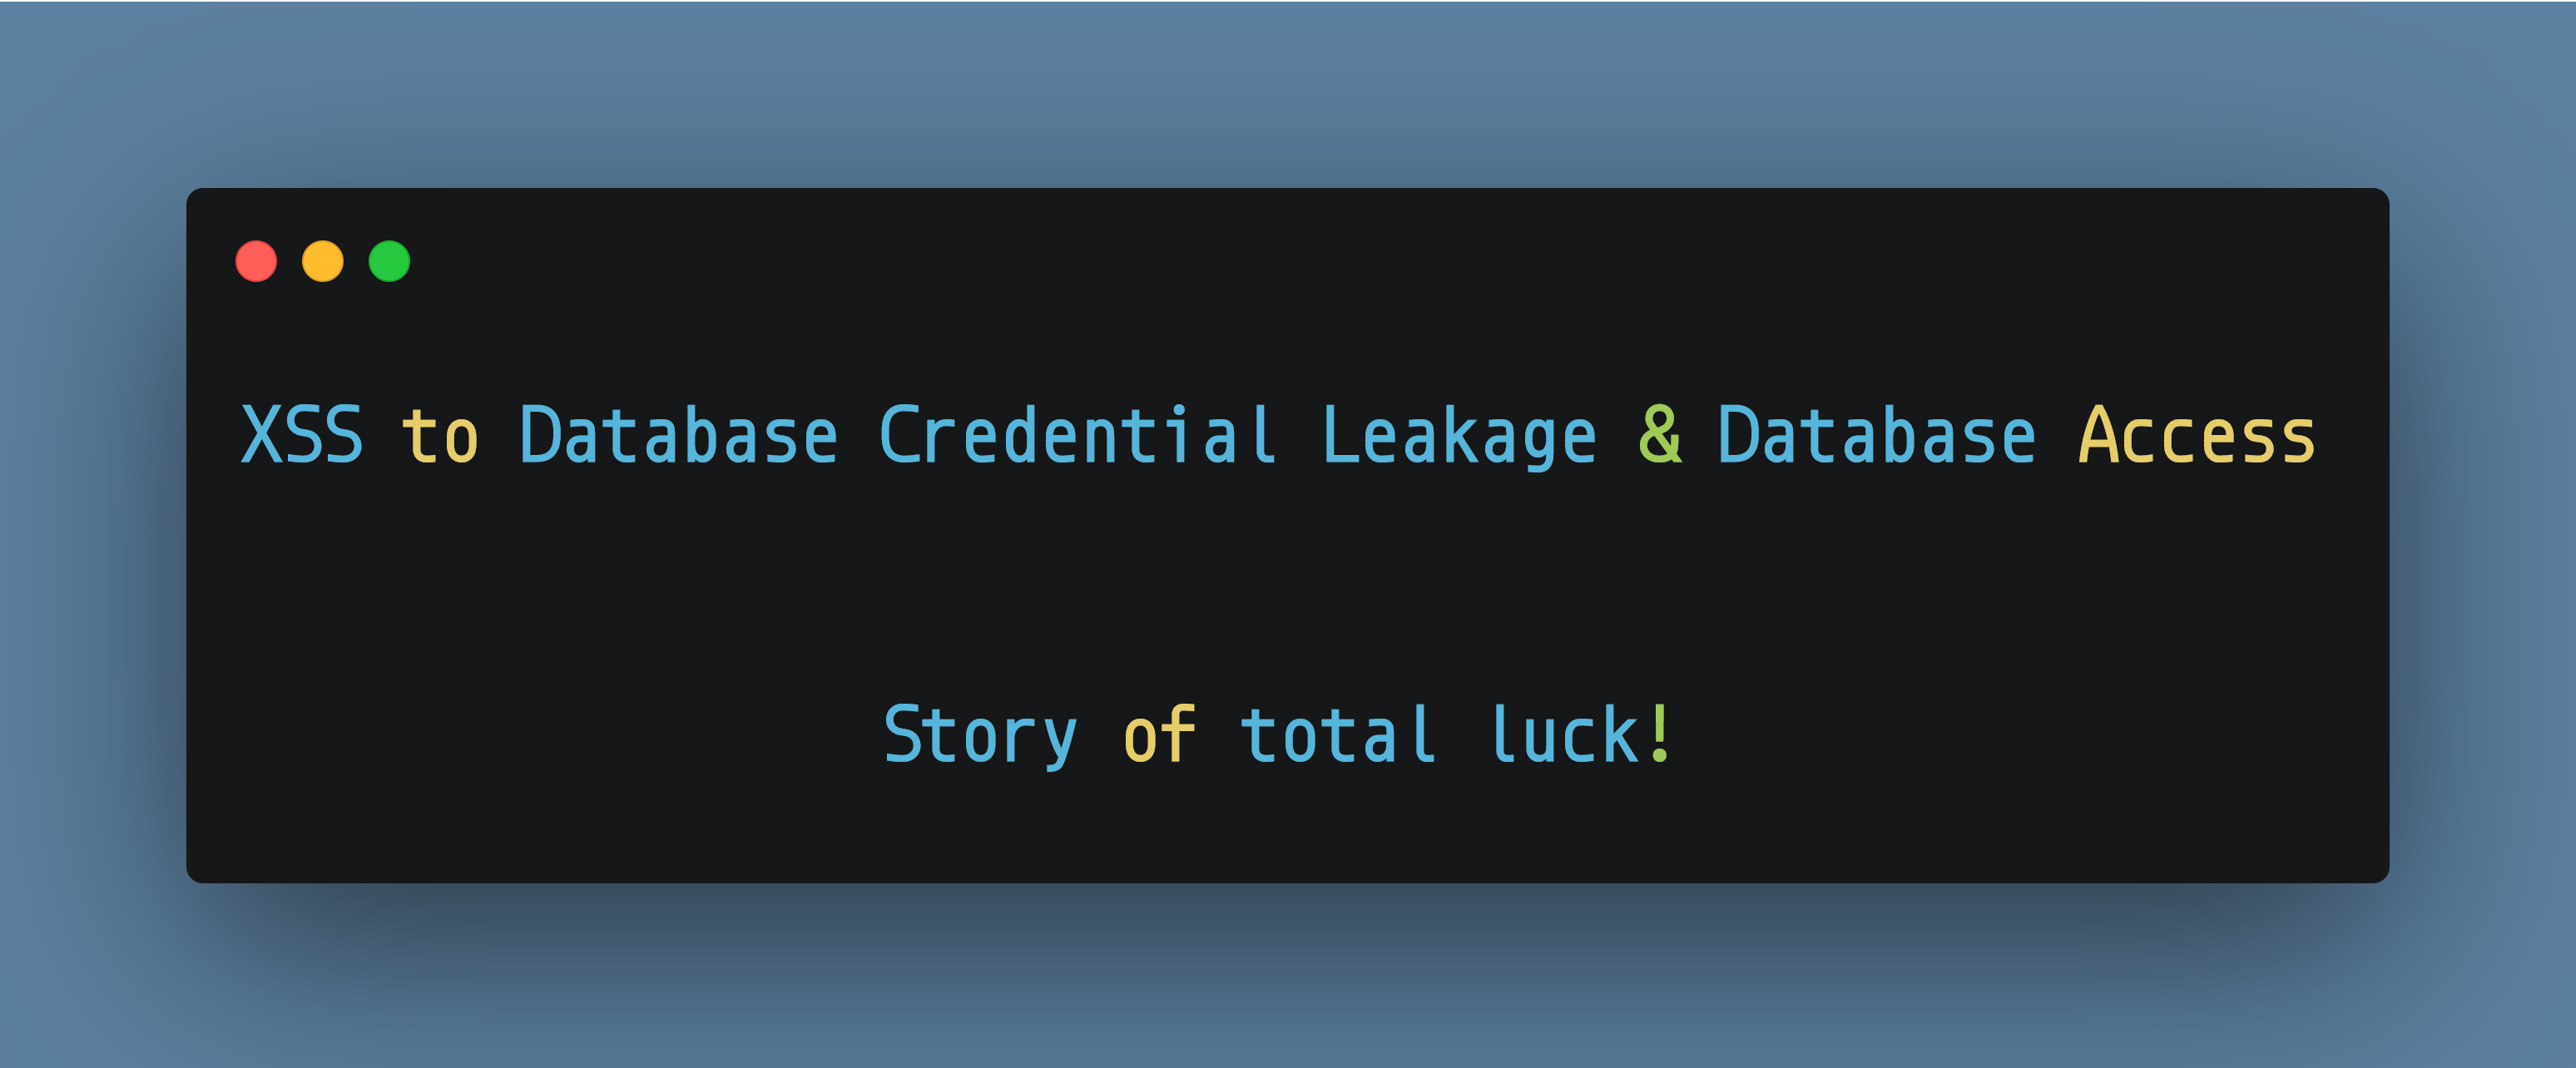 XSS to Database Credential Leakage & Database Access — Story of total luck!